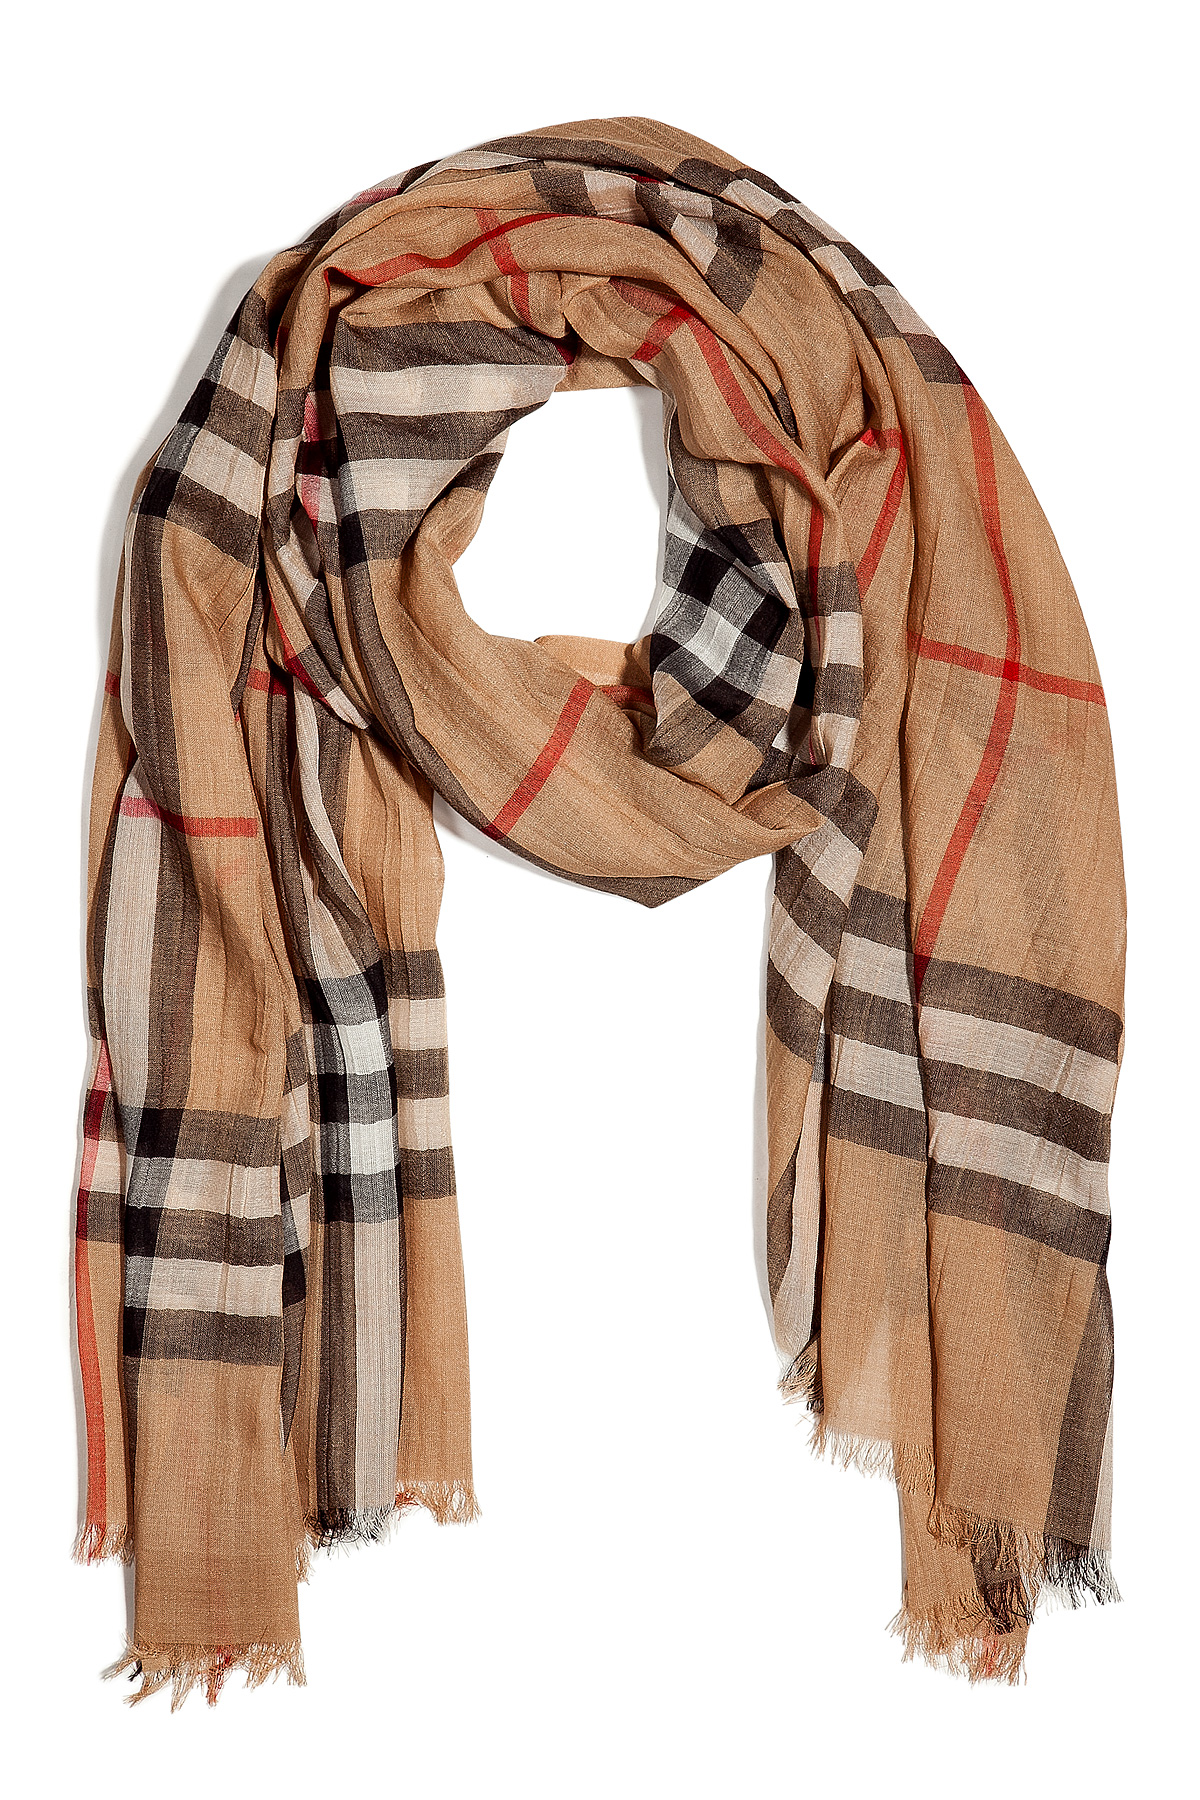 burberry camel giant check woolsilk gauze scarf in natural lyst. Black Bedroom Furniture Sets. Home Design Ideas